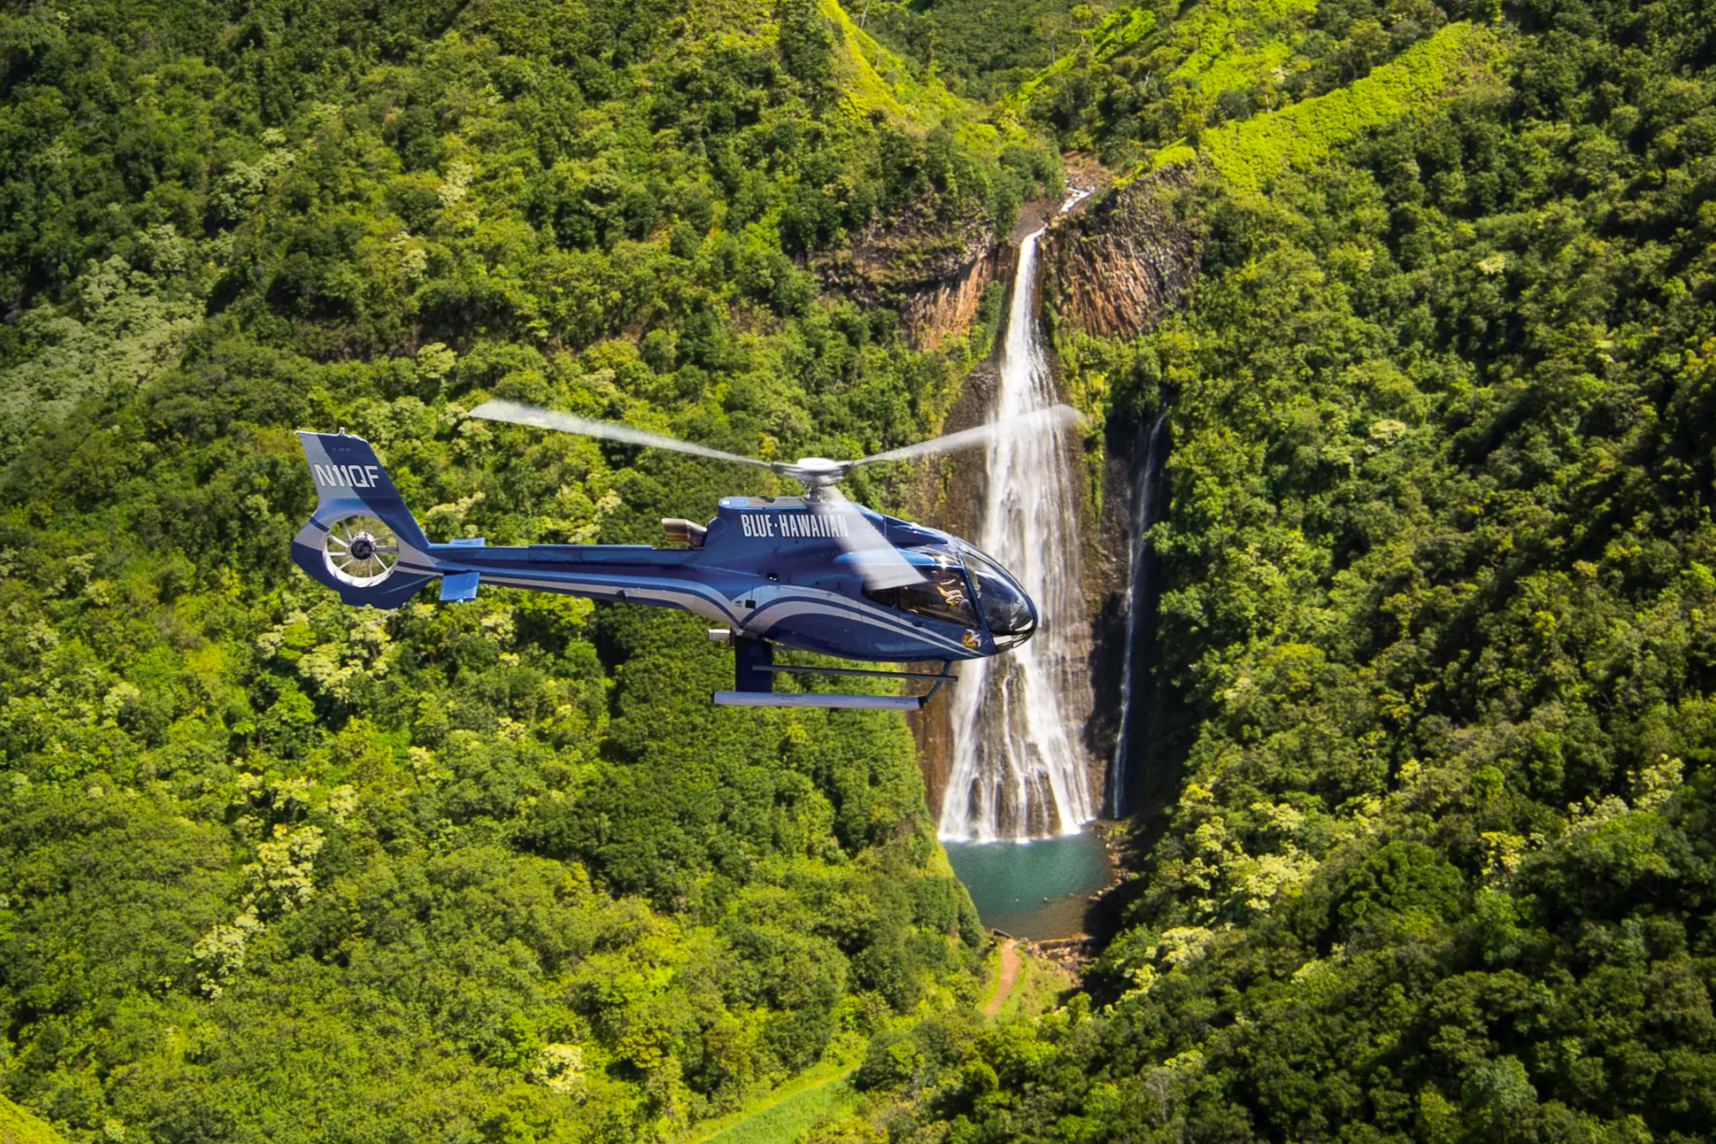 HELICOPTER - TOUR VIDEOThe island of Kauai offers an amazing number of attractions that can only be seen from a helicopter. Much of Kauai's north shore is so inaccessible that no road leads there. Hop on a helicopter or sea plane and discover the spectacular Na Pali Coast, also known as the